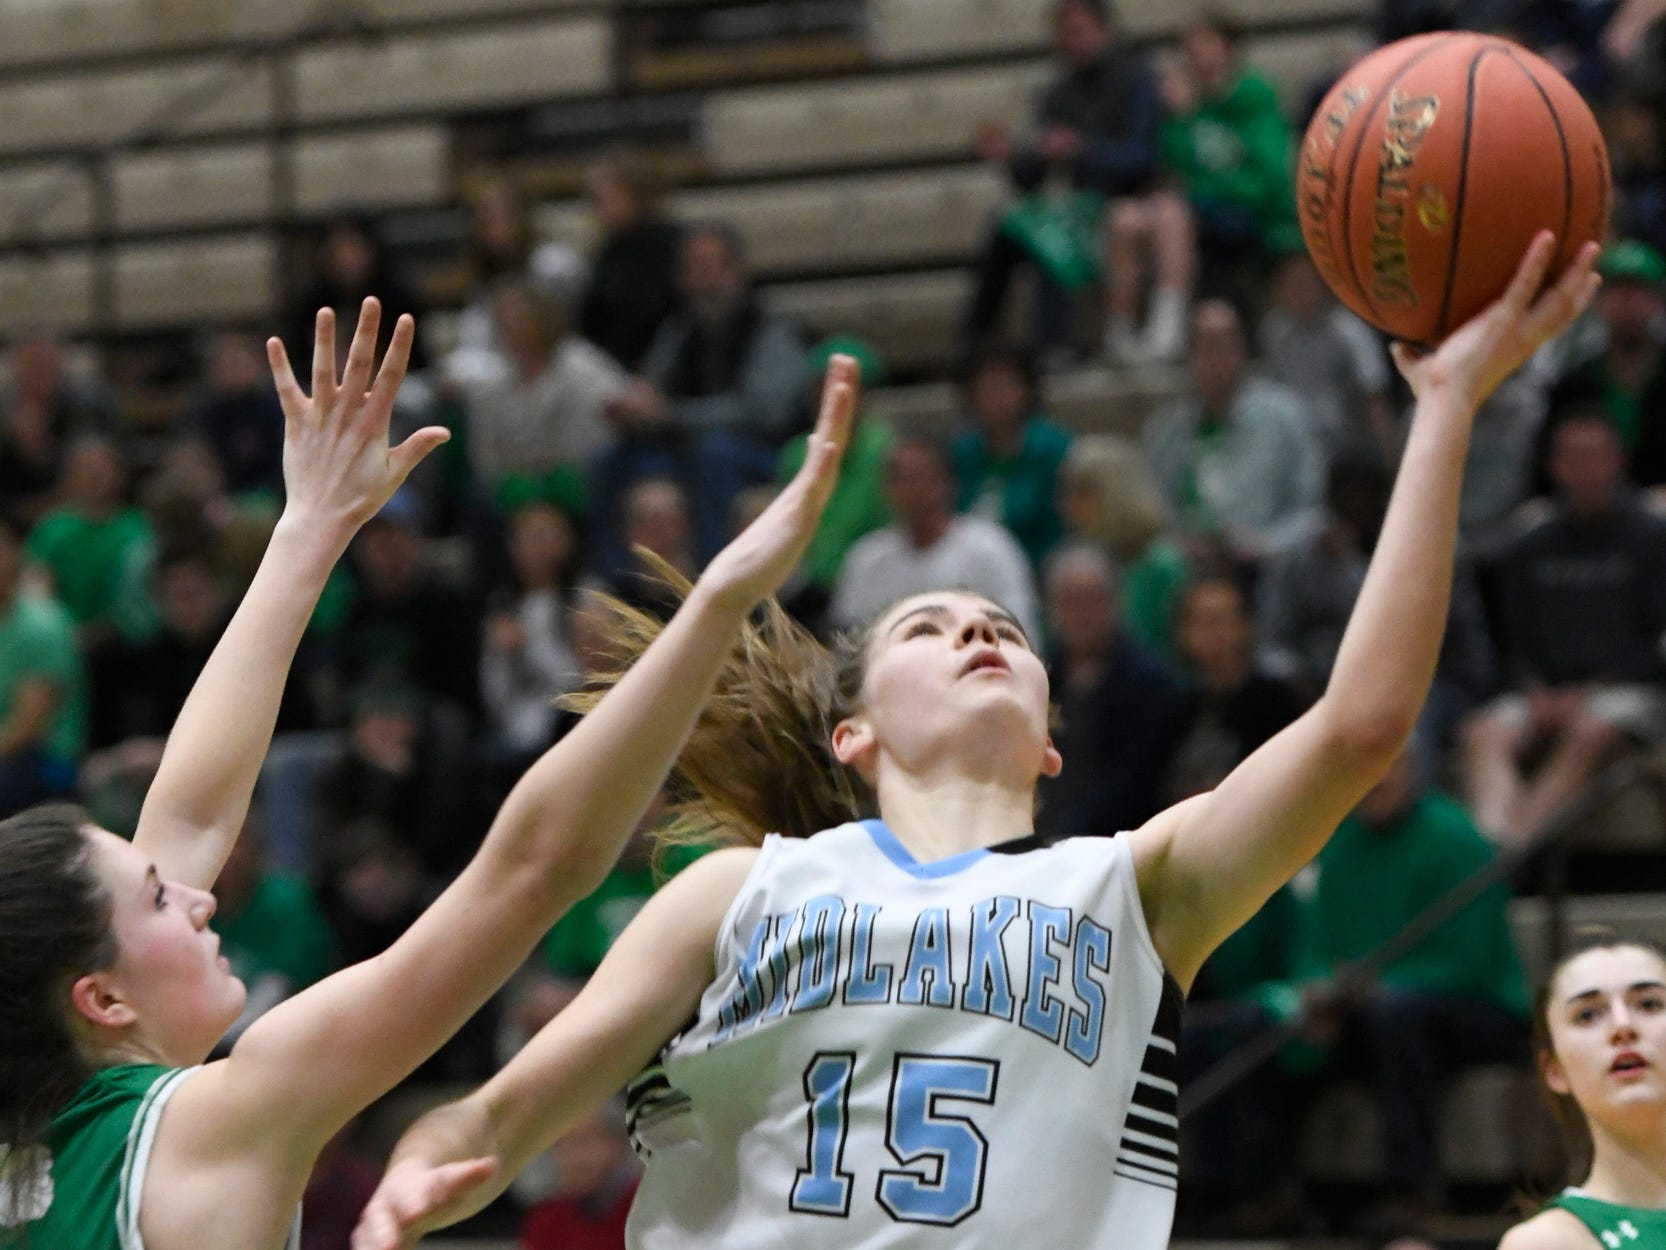 Midlakes' Cara Walker goes in for a layup during the Class B State Championship at Hudson Valley Community College on March 16, 2019, in Troy, N.Y.